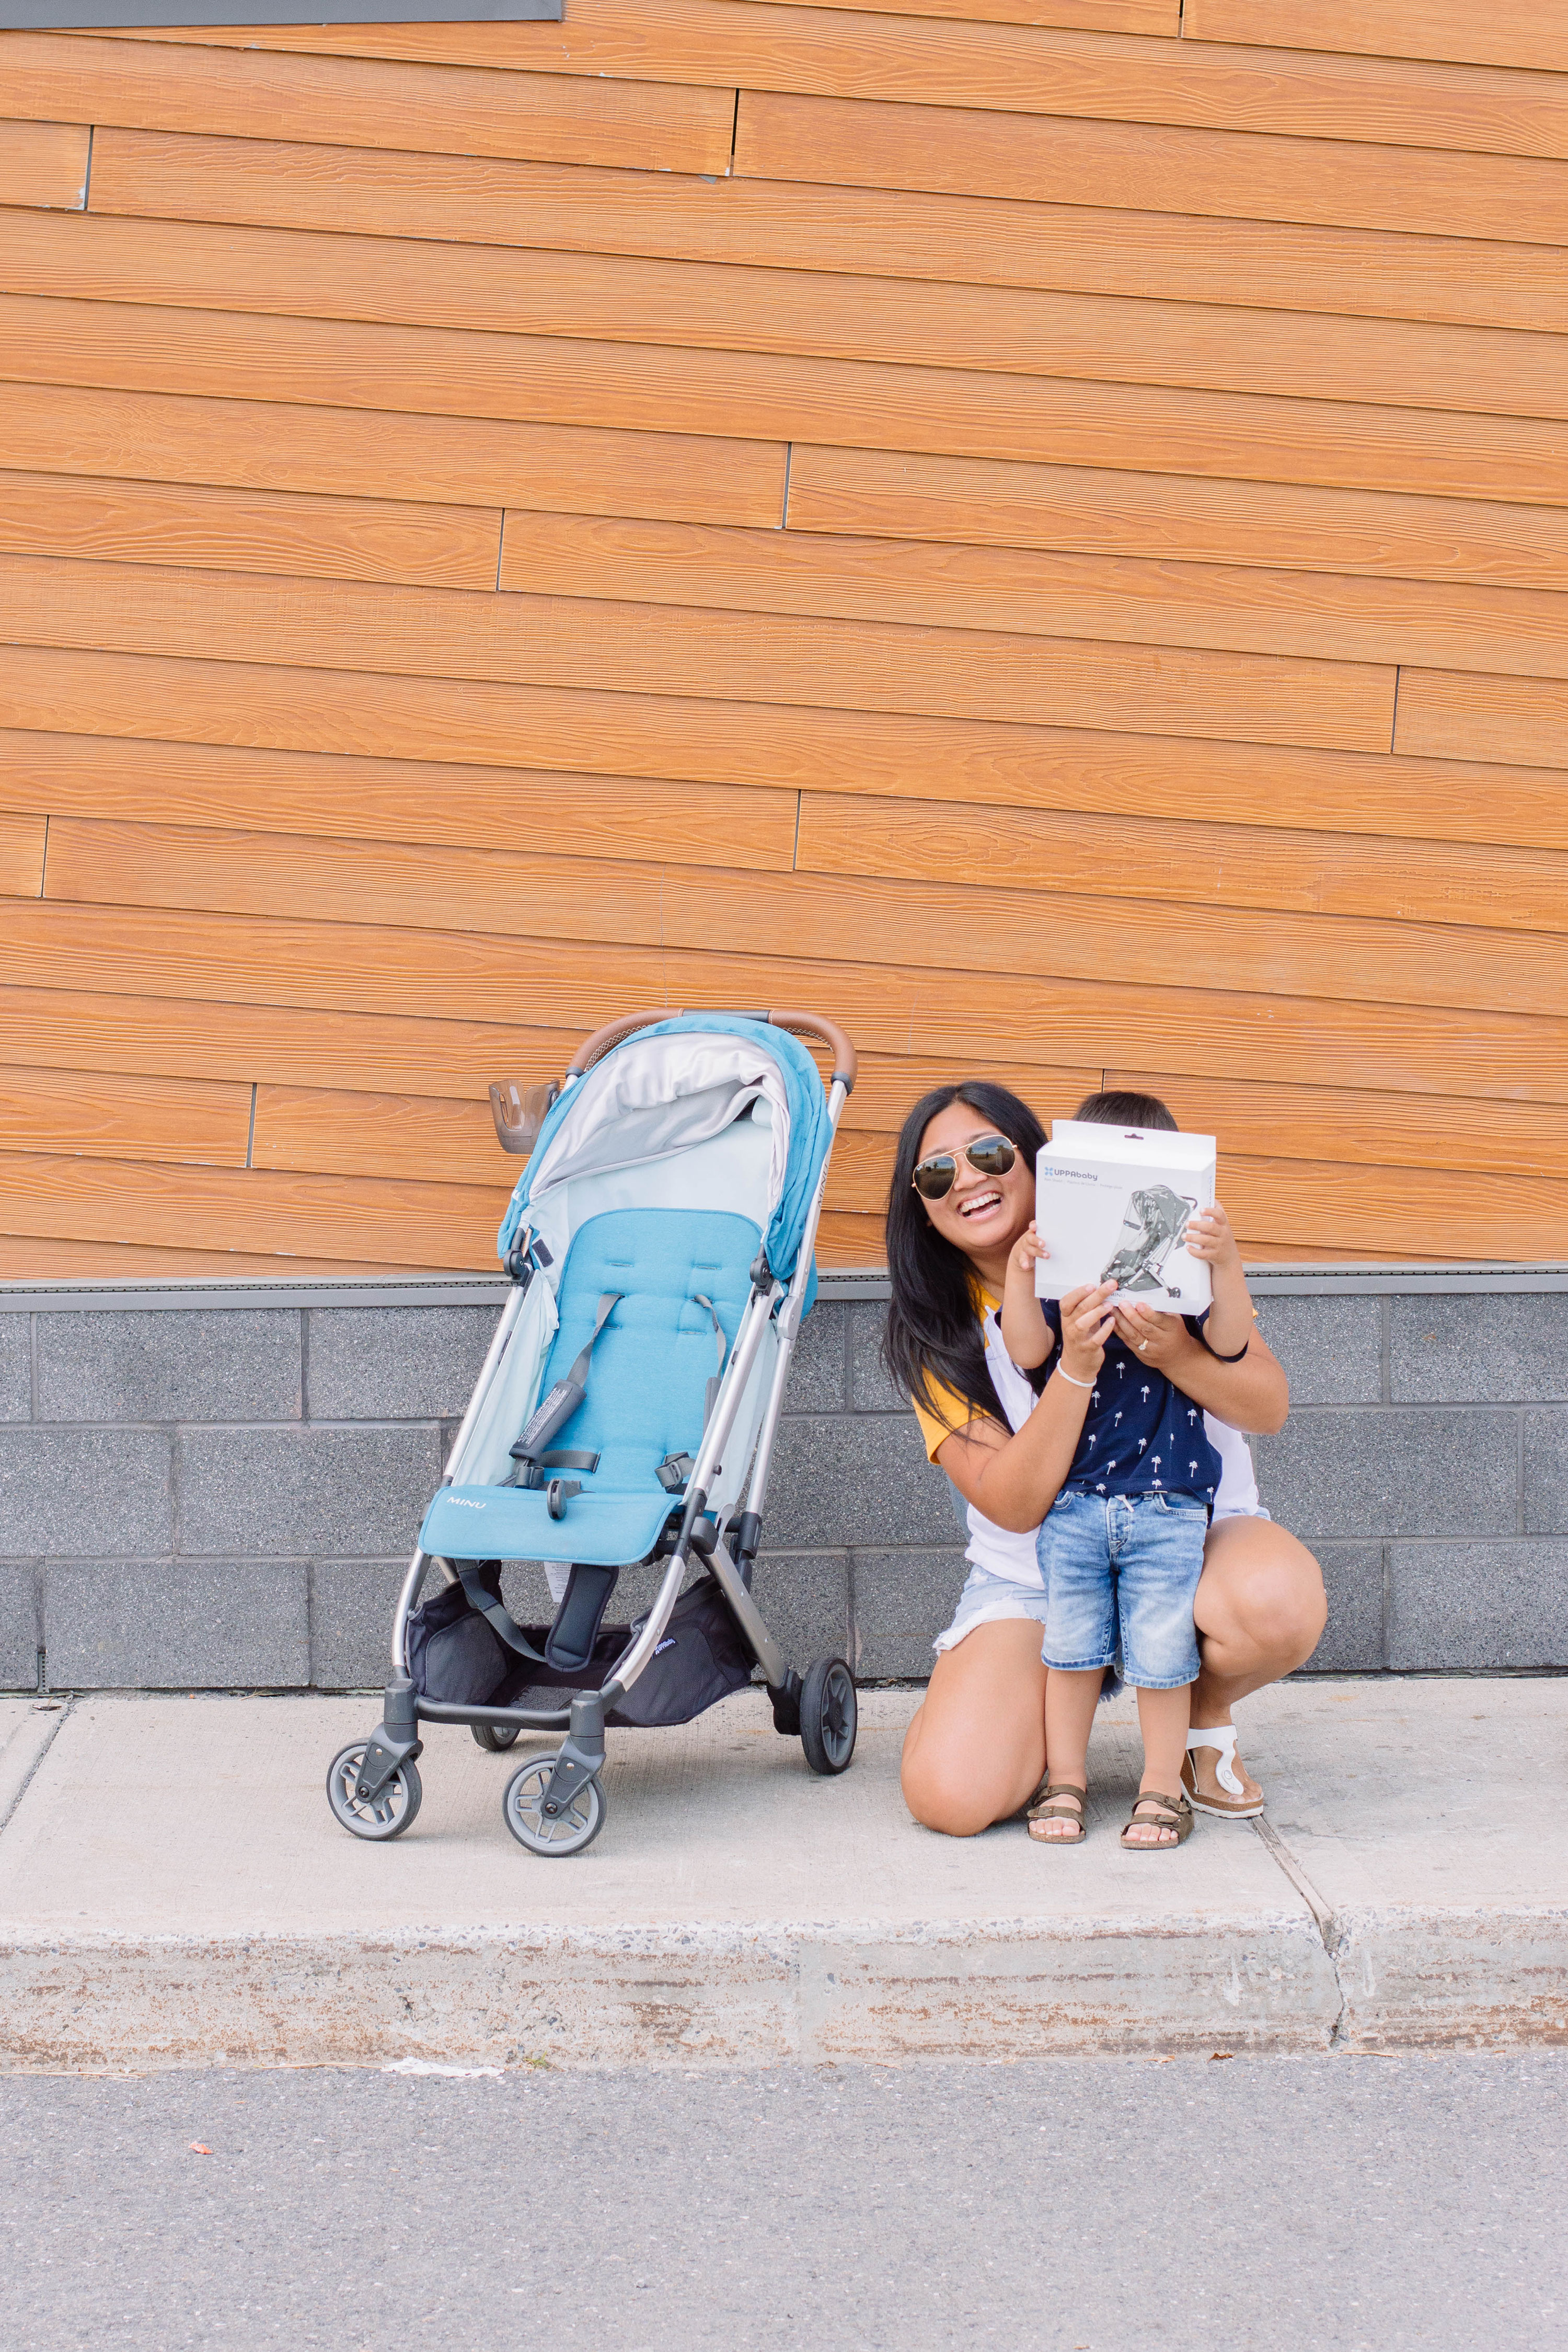 We love our UPPAbaby MINU stroller and today, we're sharing our favorite accessories to go along with it! #UPPAbaby #UPPAbabyMINU